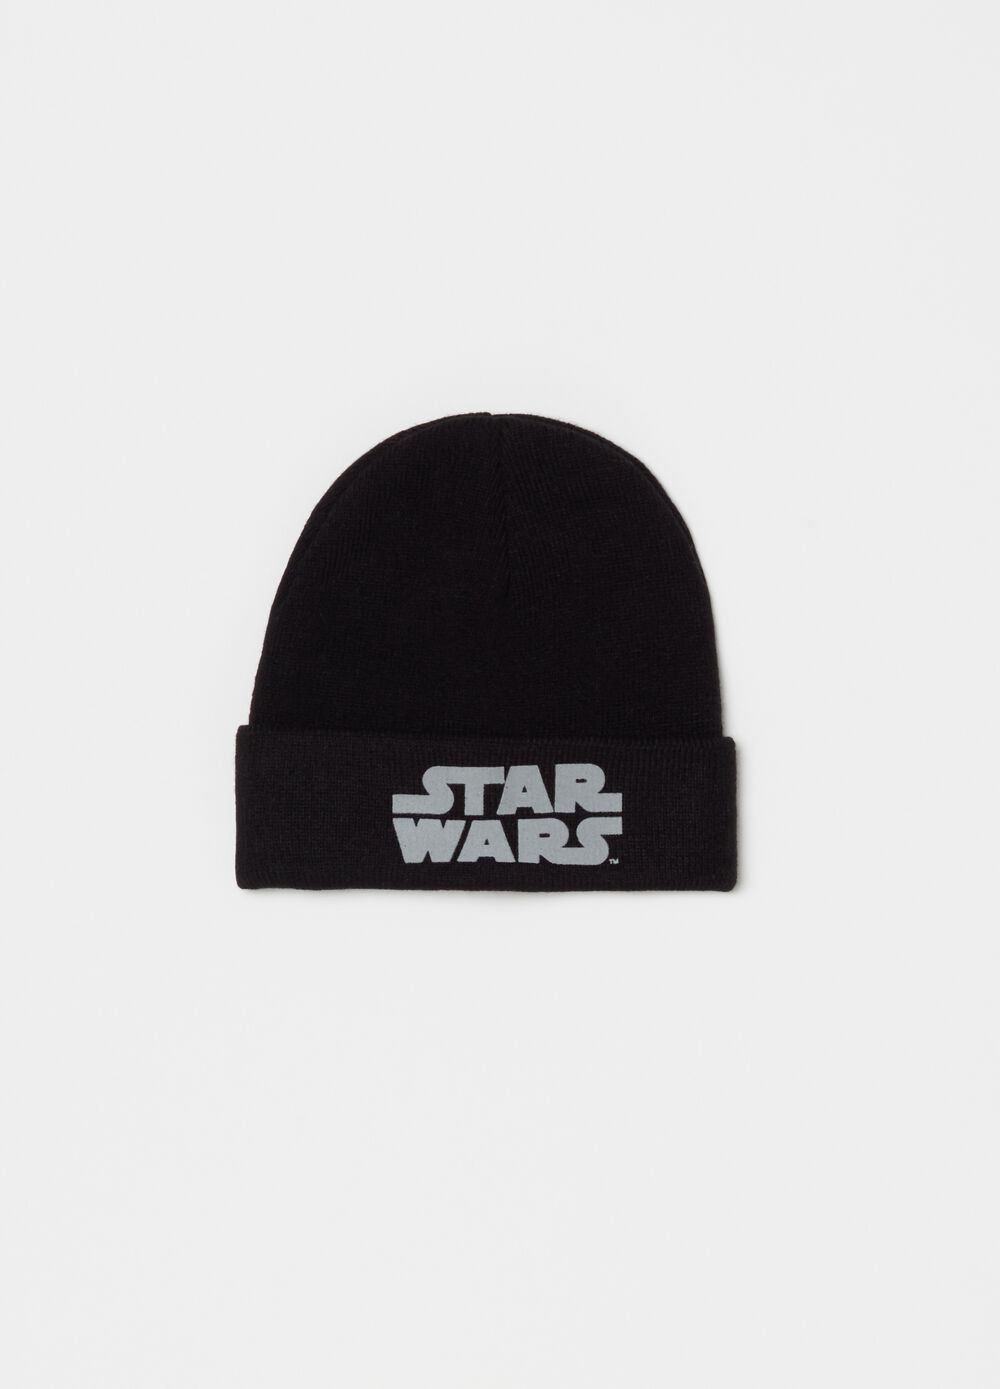 Knitted Star Wars hat with fold